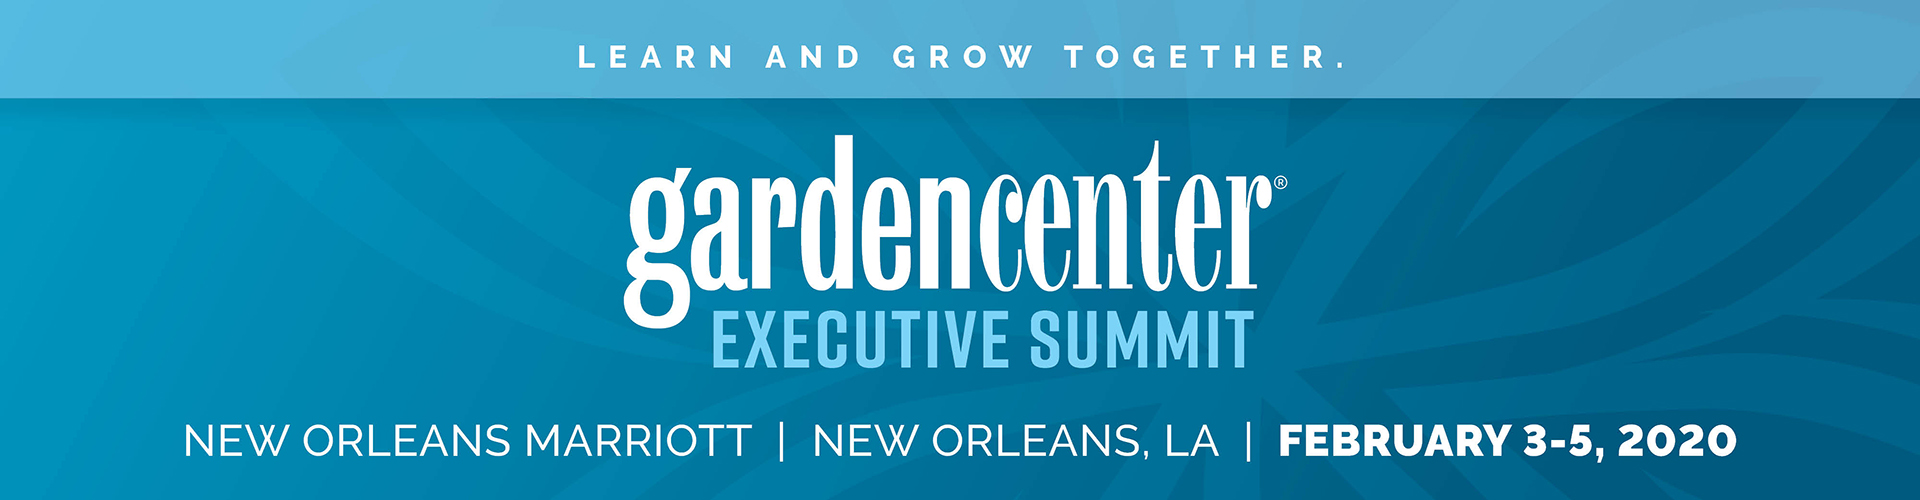 Garden Center Executive Summit Info Slide